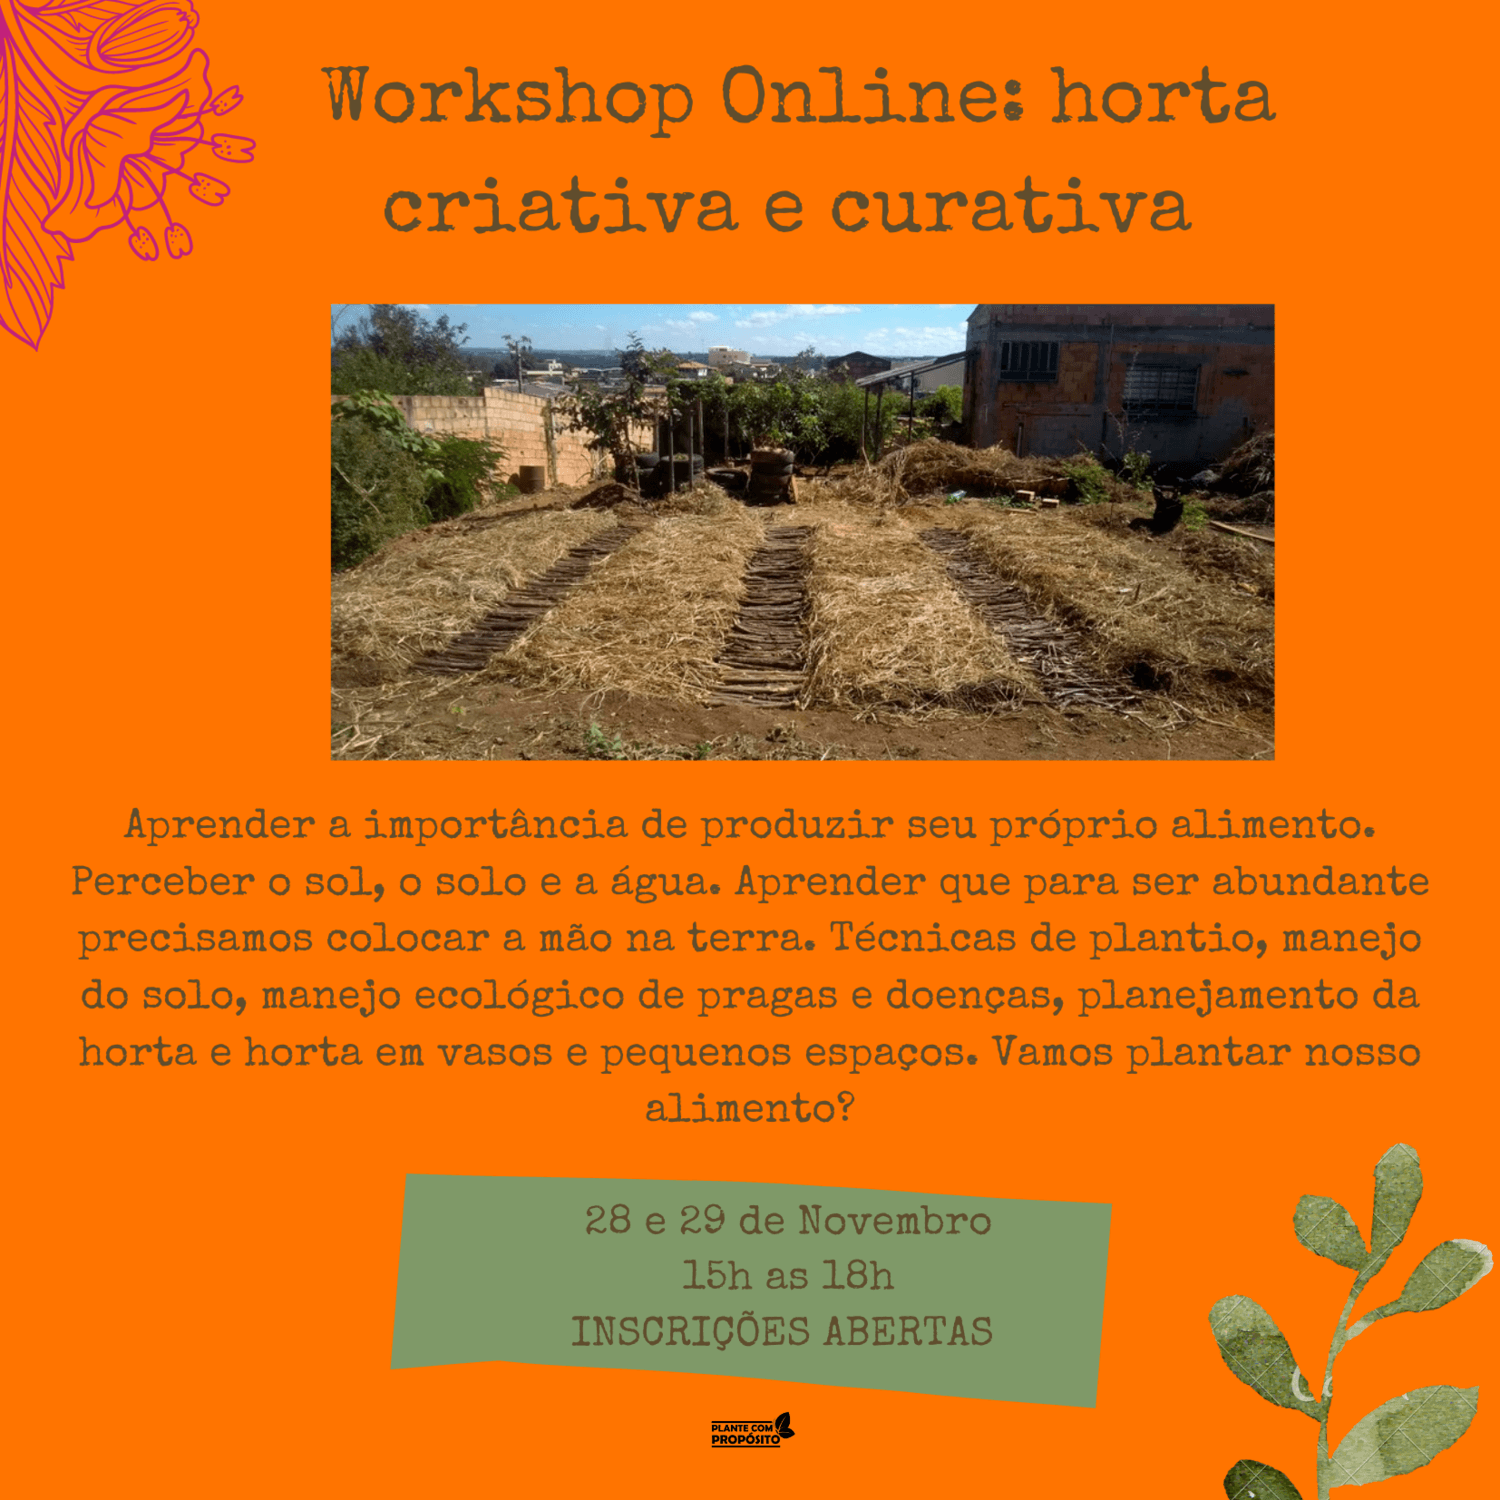 Workshop Online: horta criativa e curativa [ULTIMA TURMA]